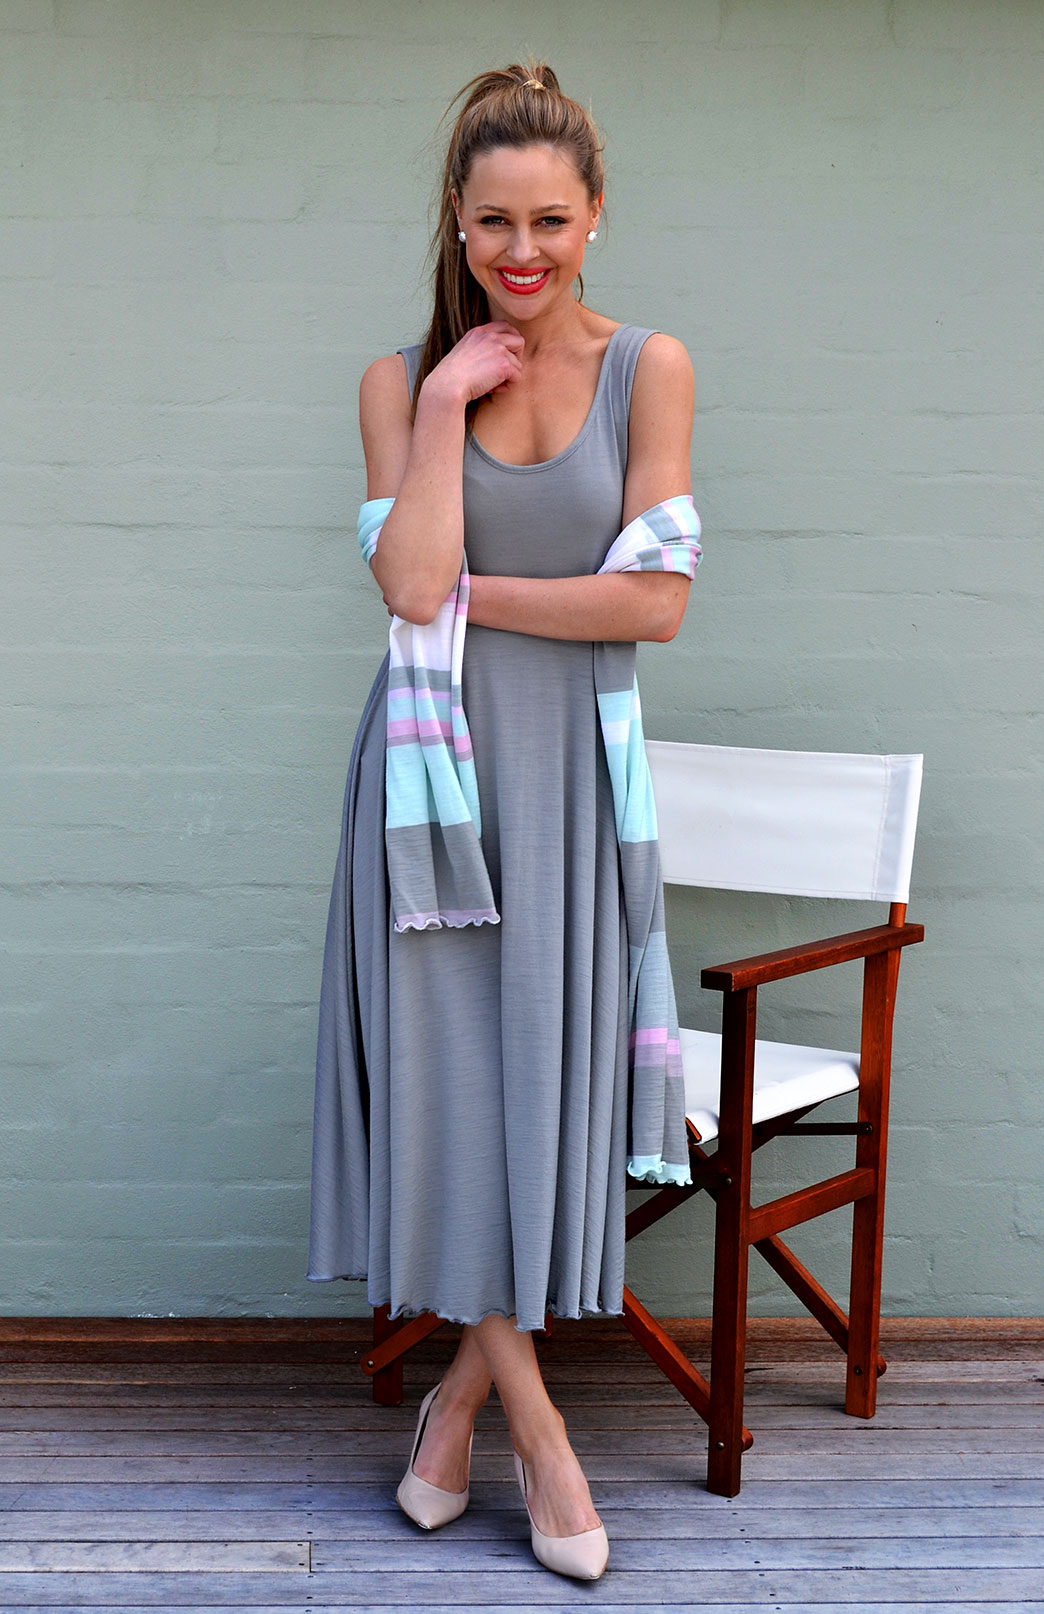 Fan Dress - Women's Frost Fan Dress with Empire Waistline - Smitten Merino Tasmania Australia